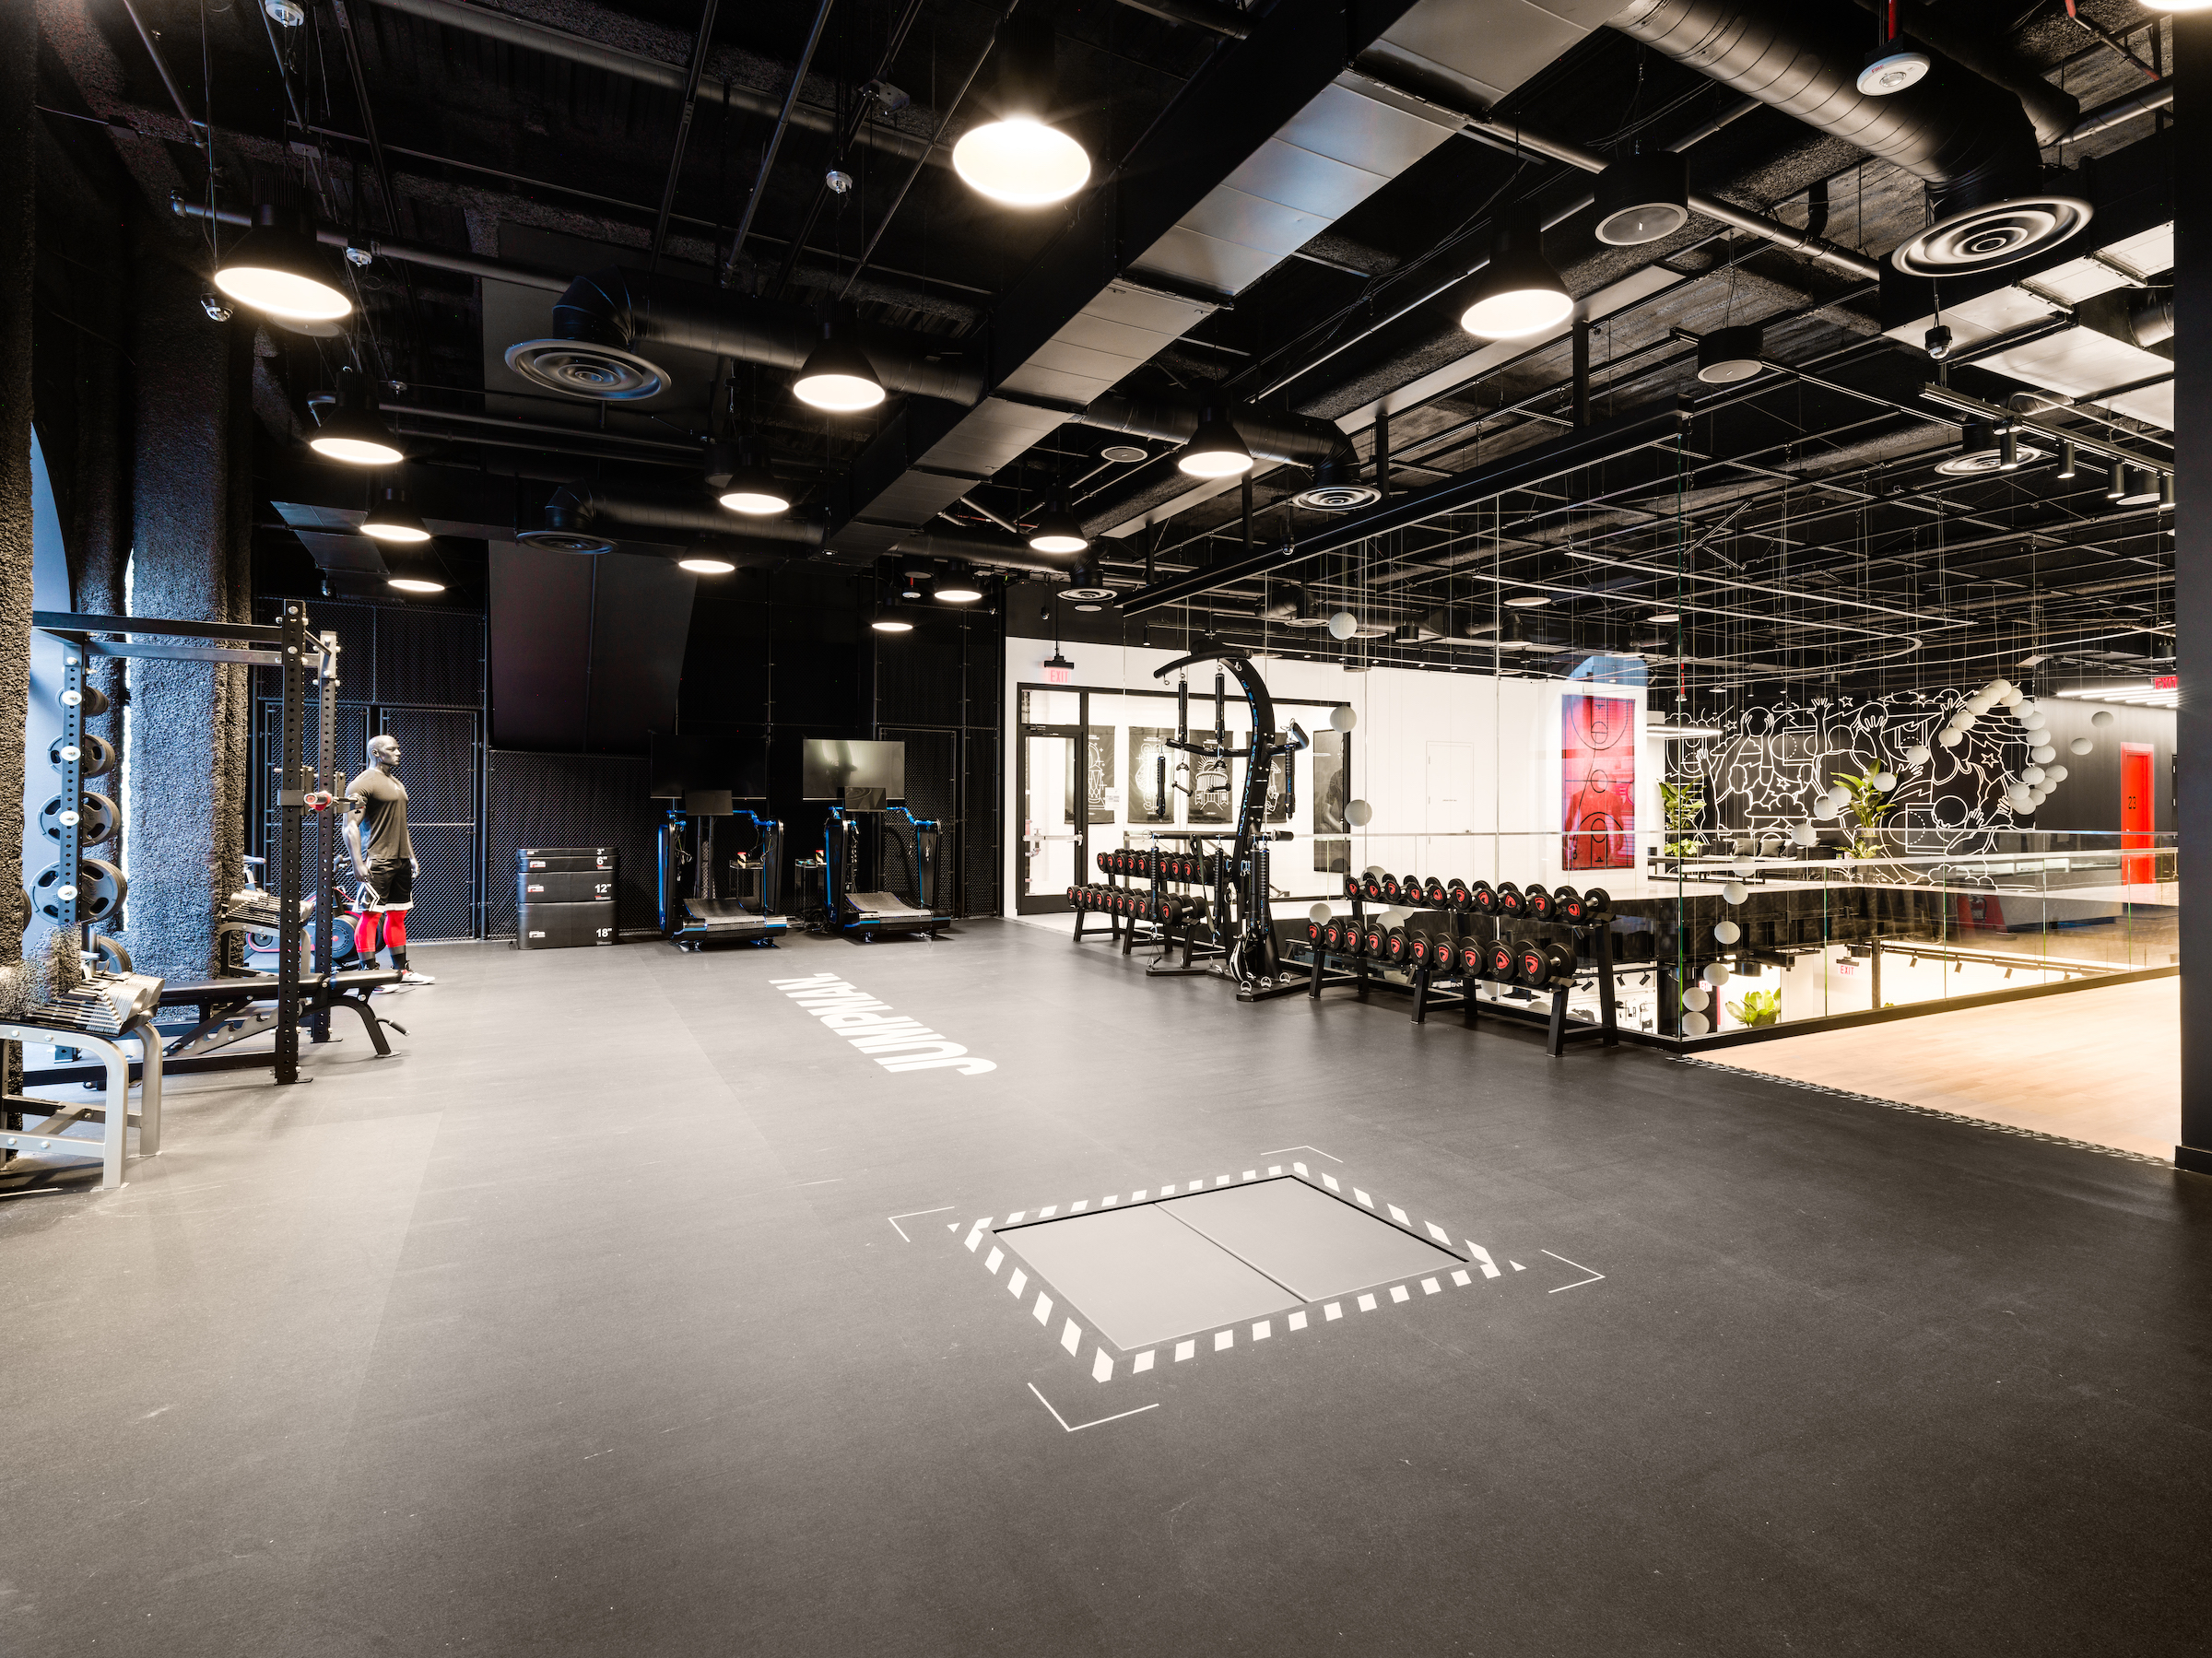 Jumpman LA - Gym area with open ceiling and lighting